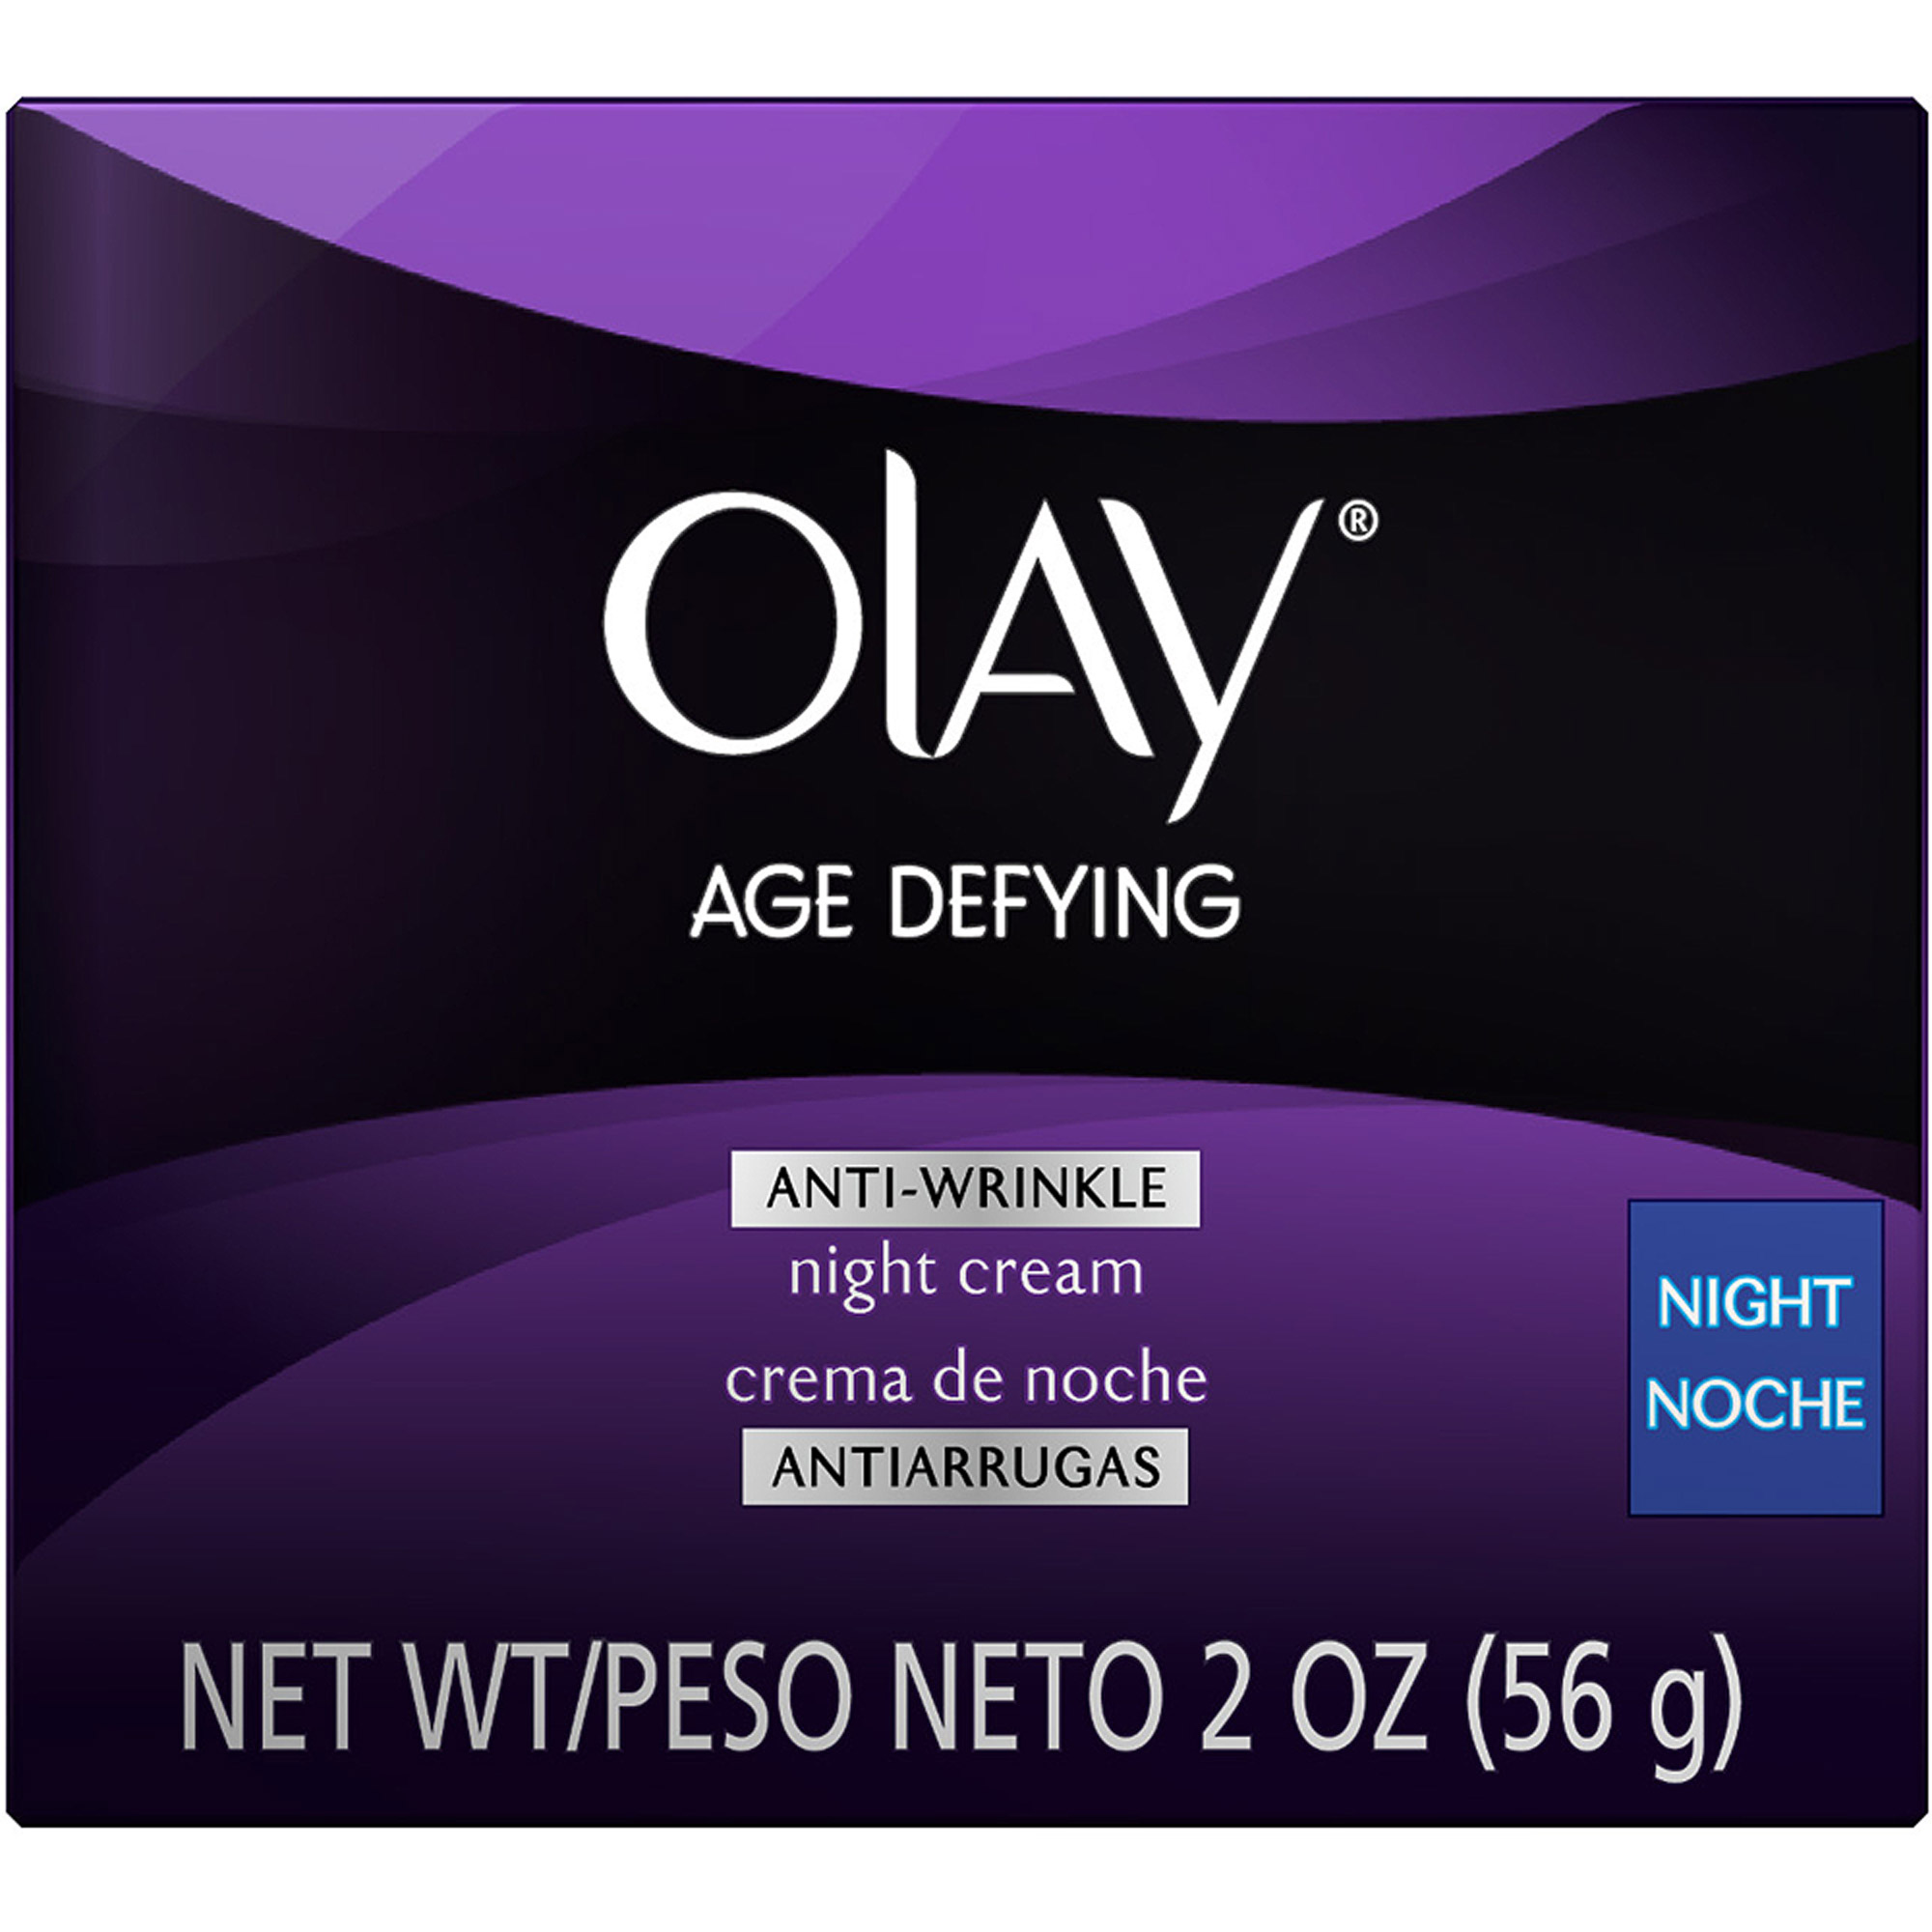 Olay Age Defying Anti-Wrinkle Night Facial Moisturizer Cream, 2 oz